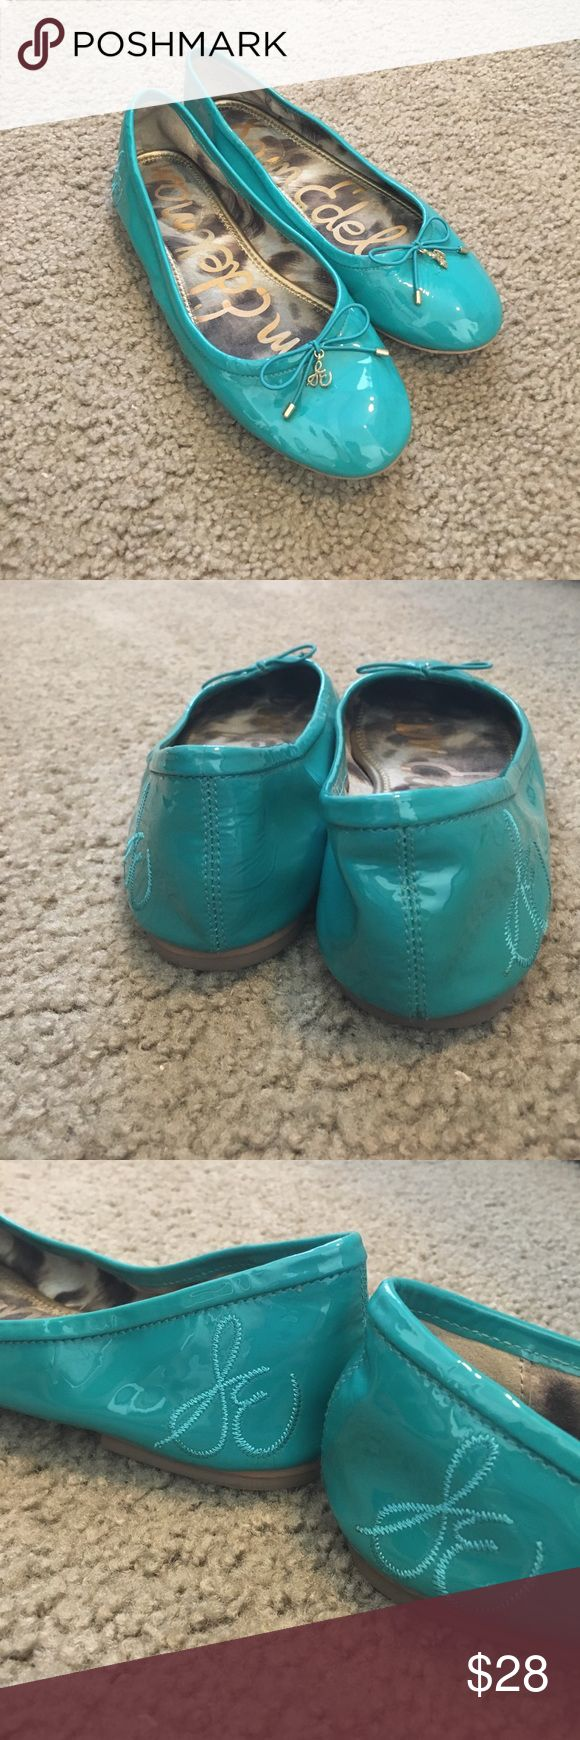 Same Edelman Teal Patent Leather Flats Super cute Teal flats! Some minor marks on front of toes where the metal pieces rubbed up against them but nothing else! Sam Edelman Shoes Flats & Loafers